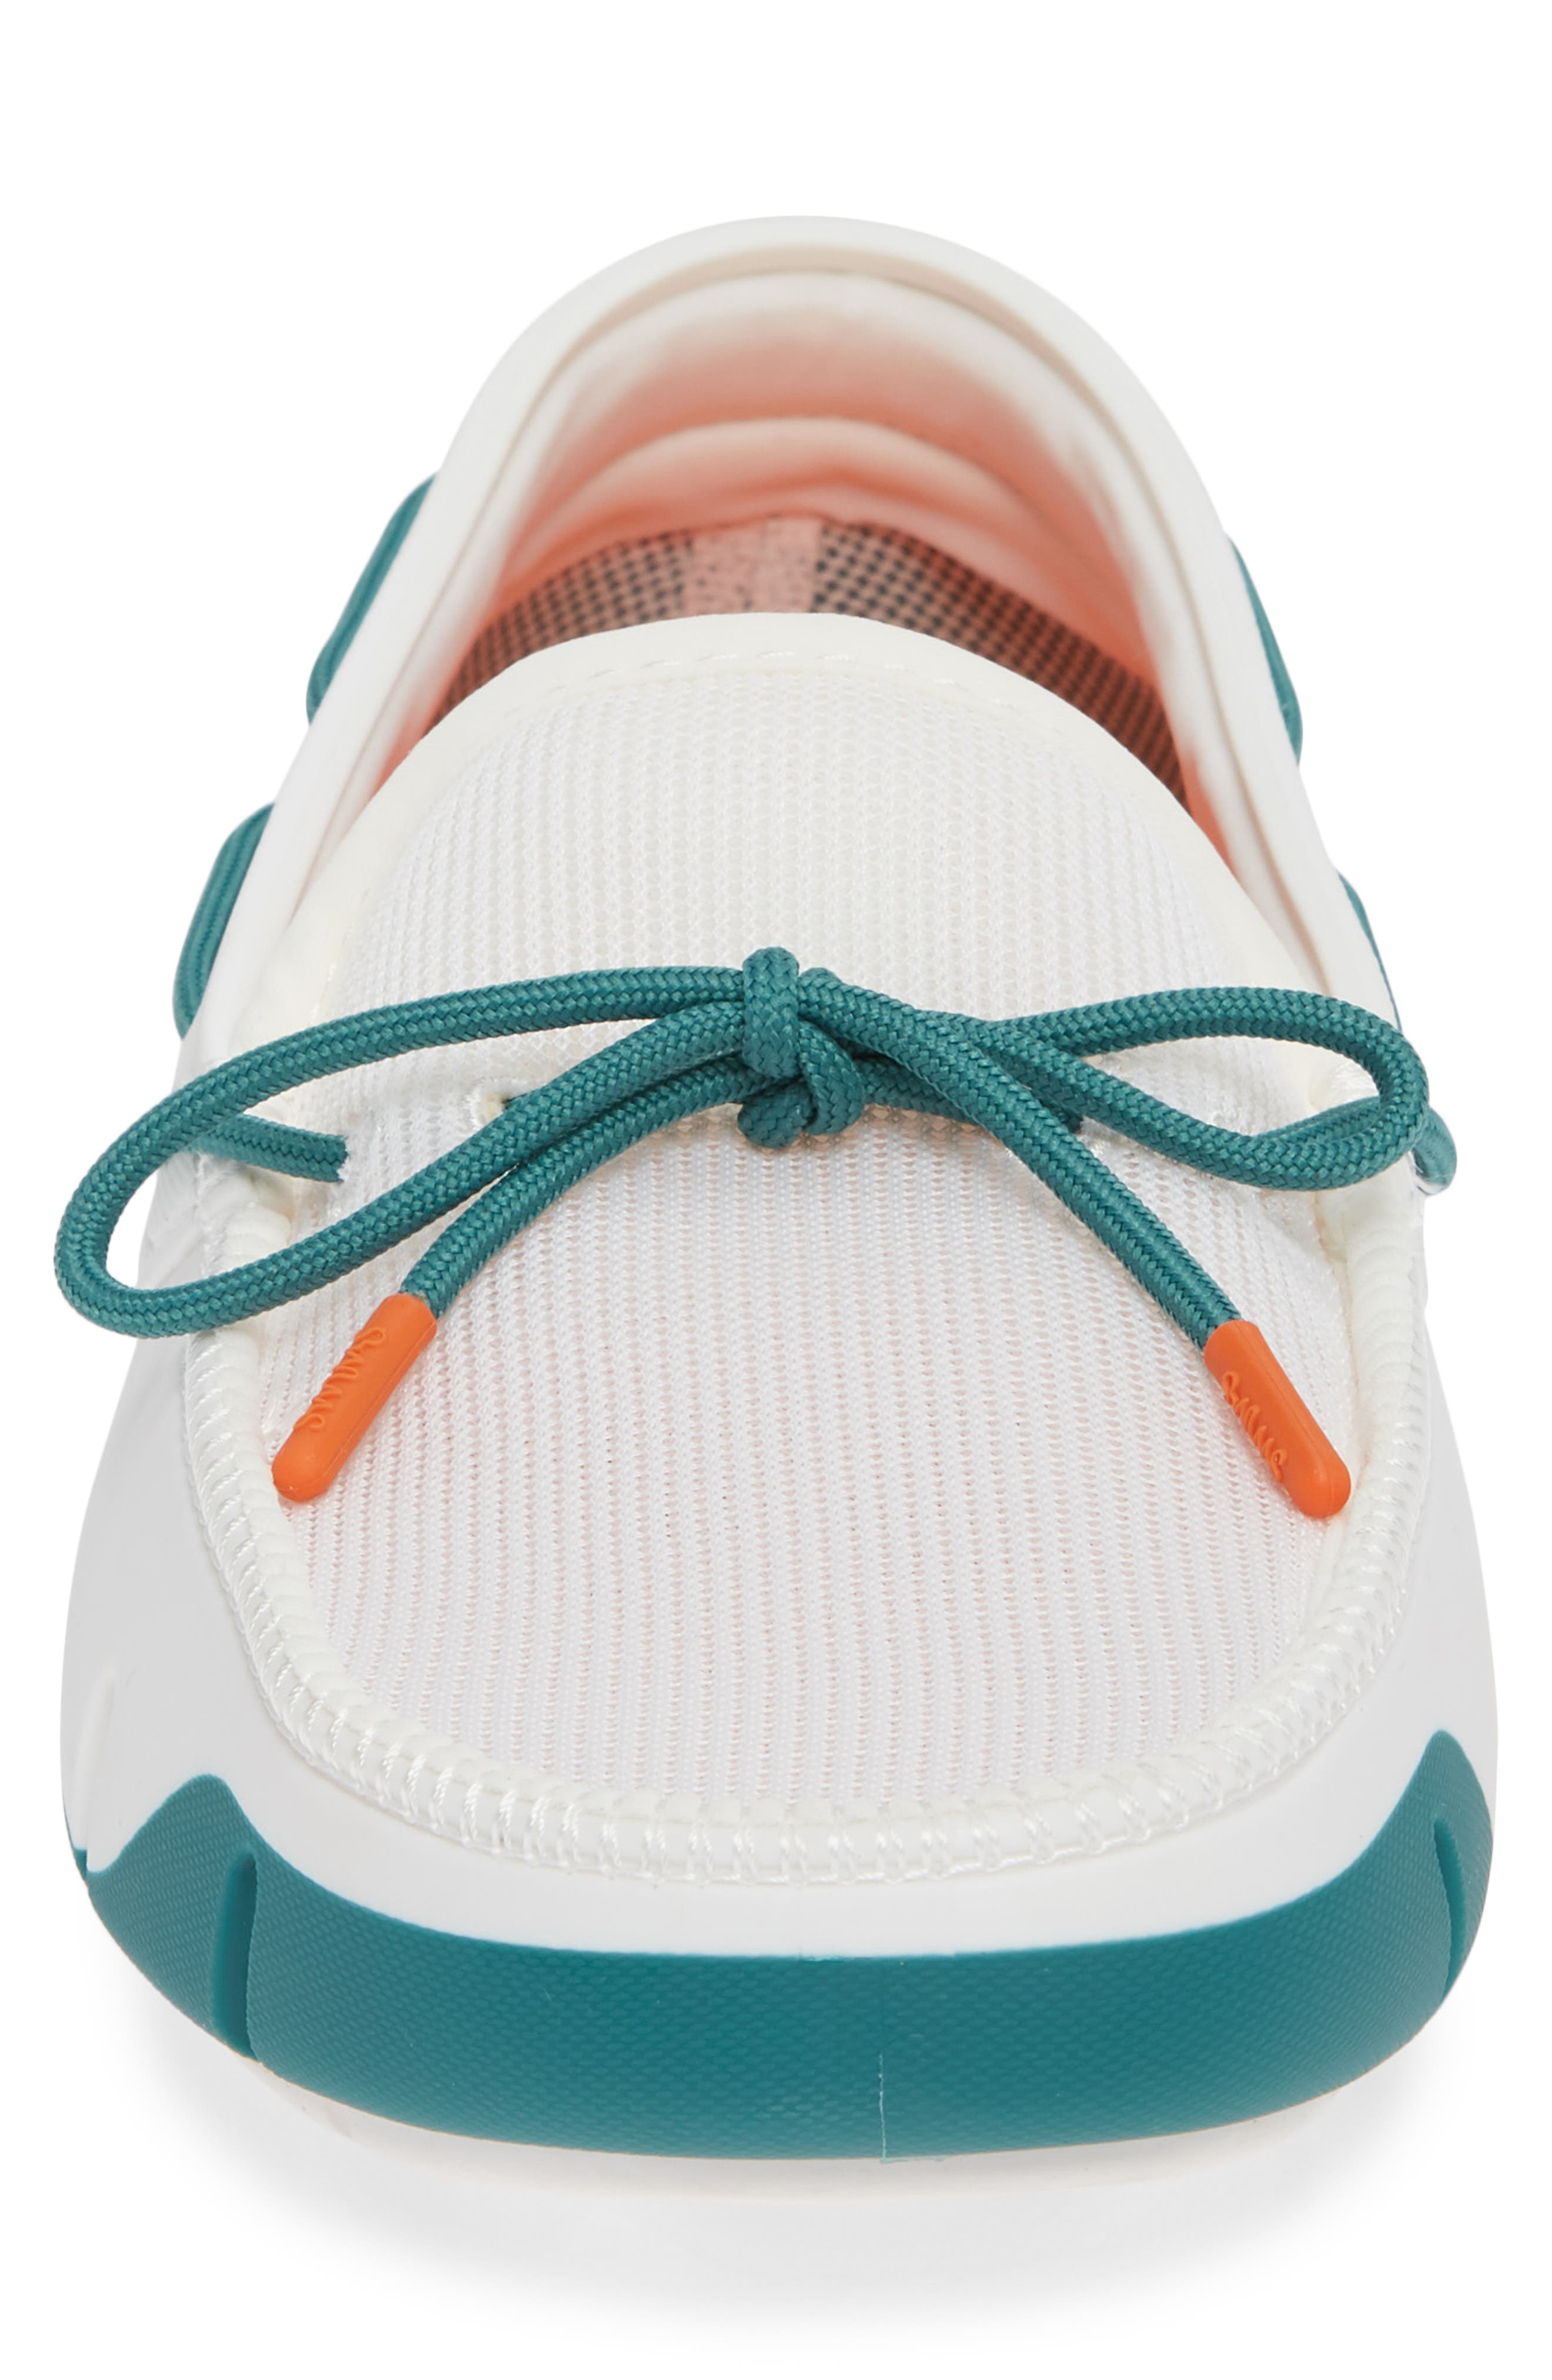 SWIMS, Stride Lace Loafer, Alternate thumbnail 4, color, 100